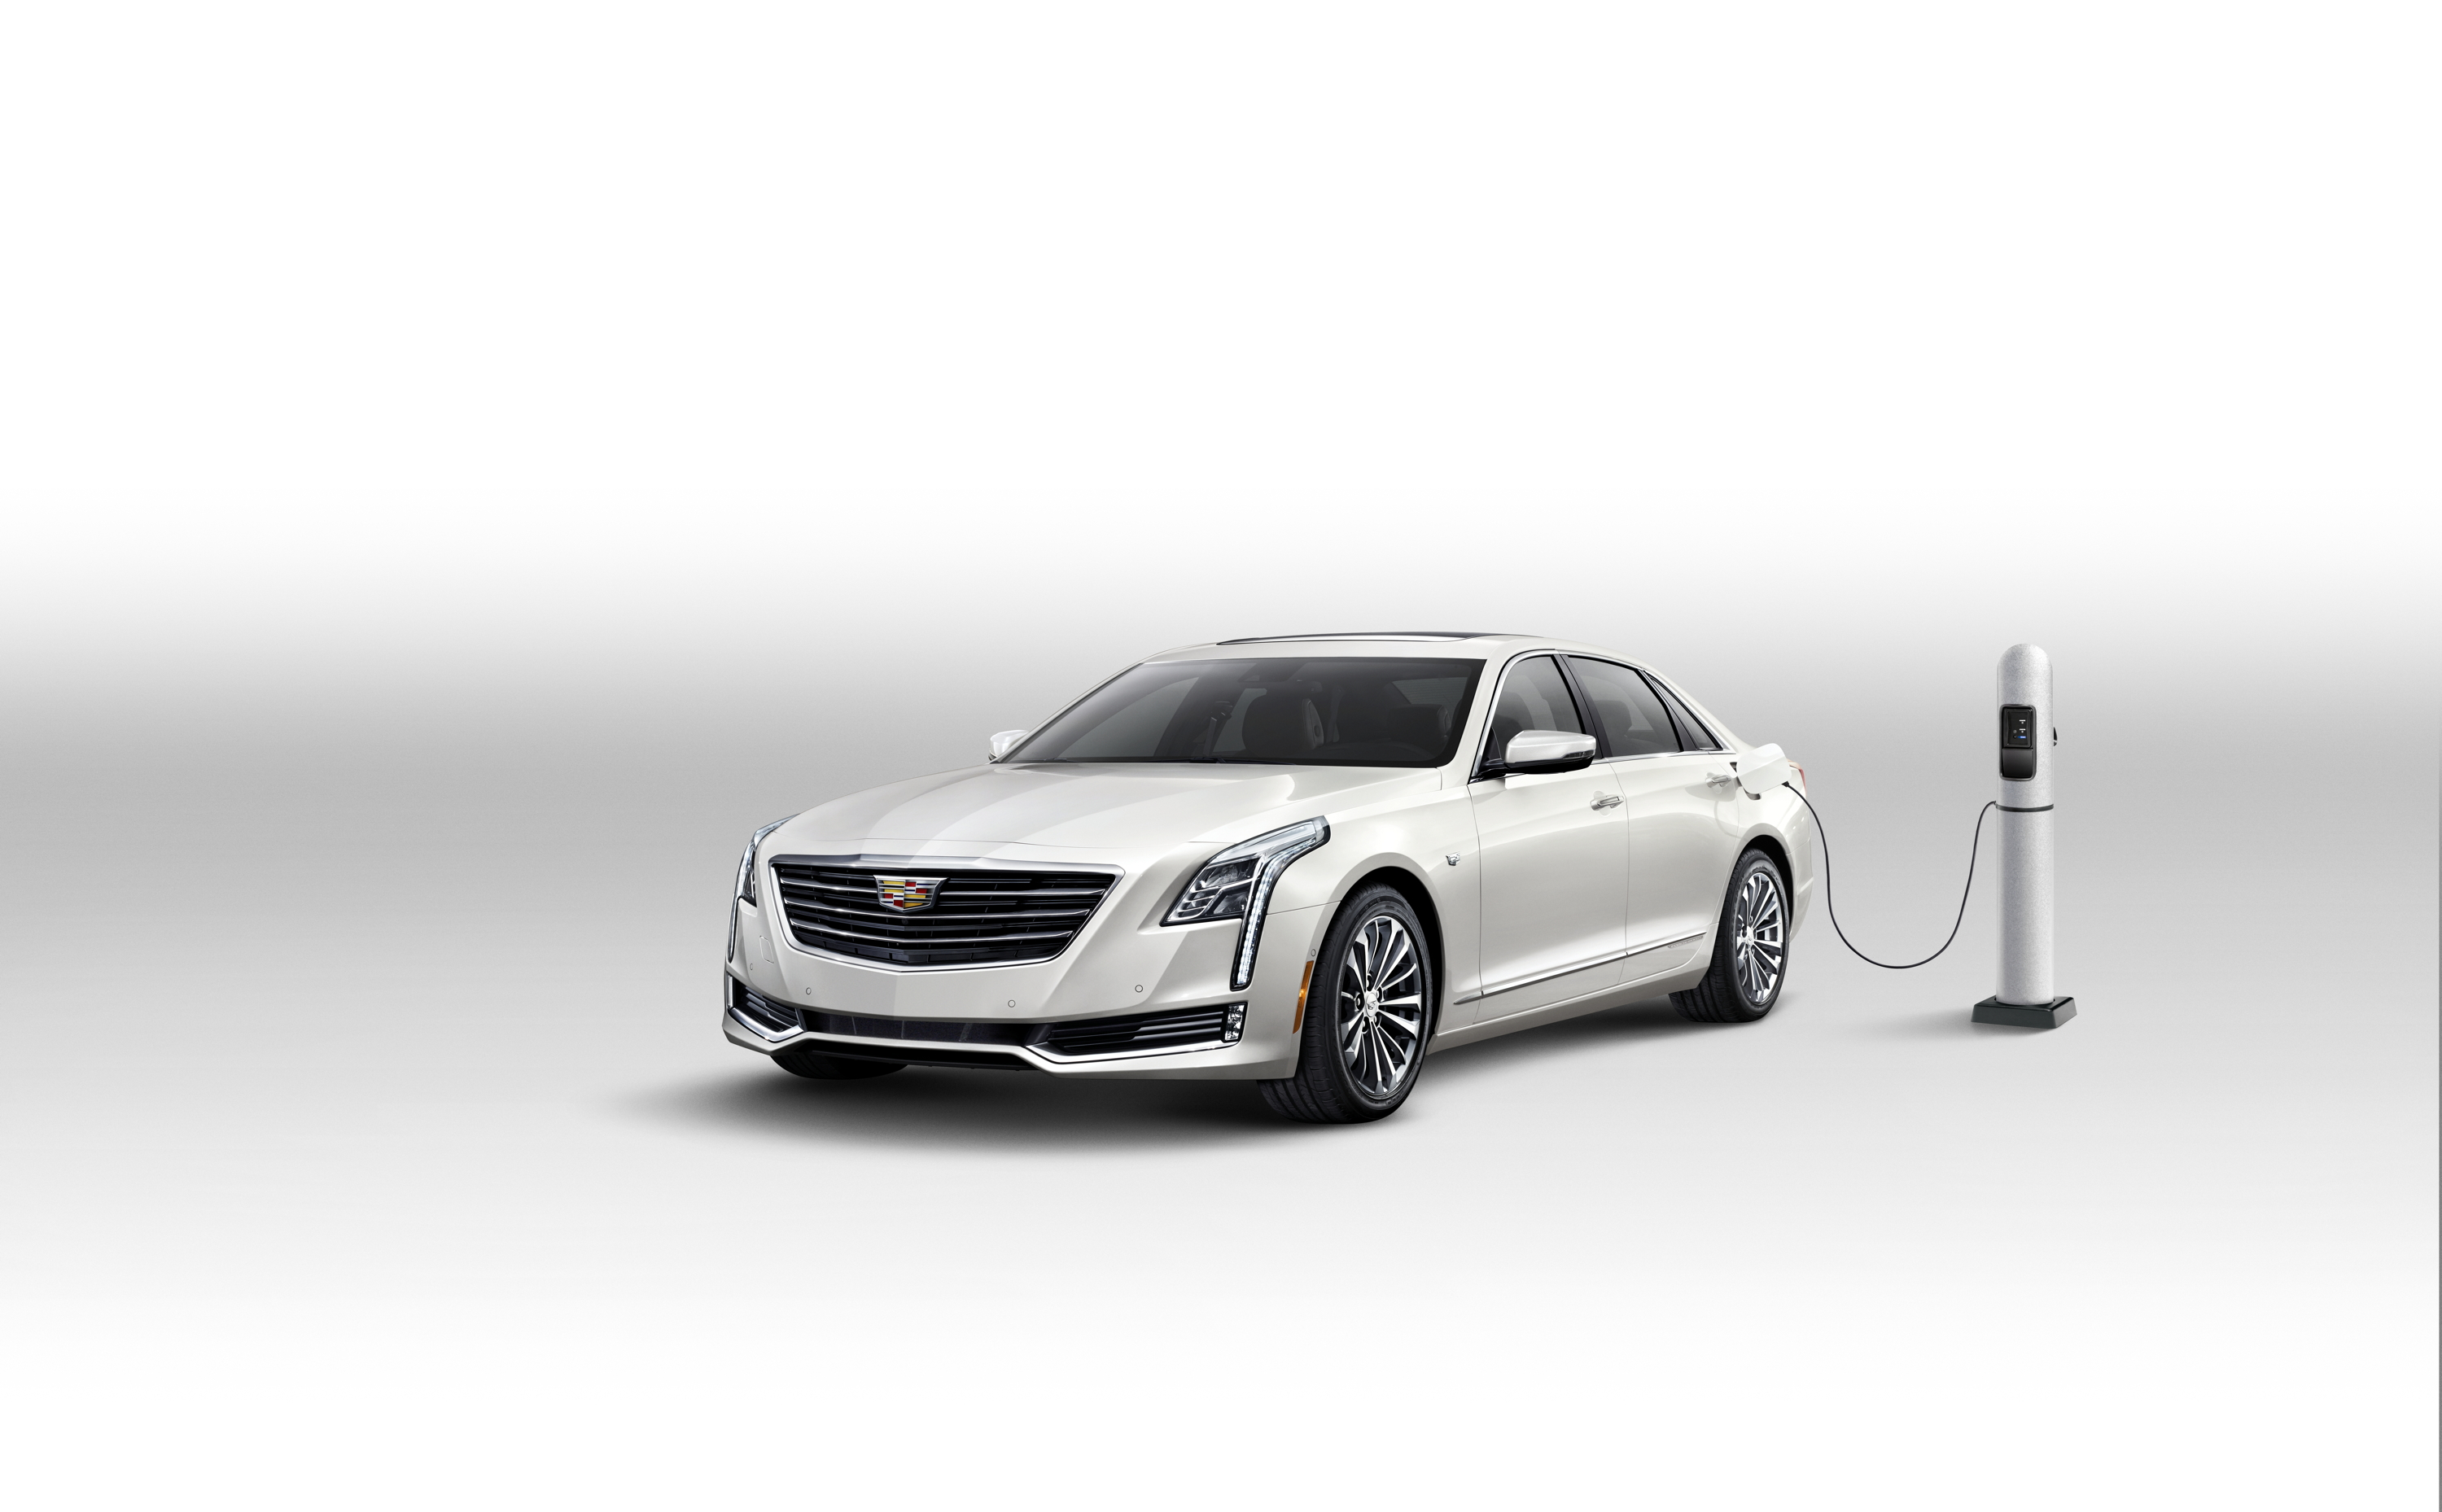 Cadillac Is Discontinuing The Ct6 Plug In Hybrid For 2019 Model Year Although It Did Not Provide Its Reasons Killing Says